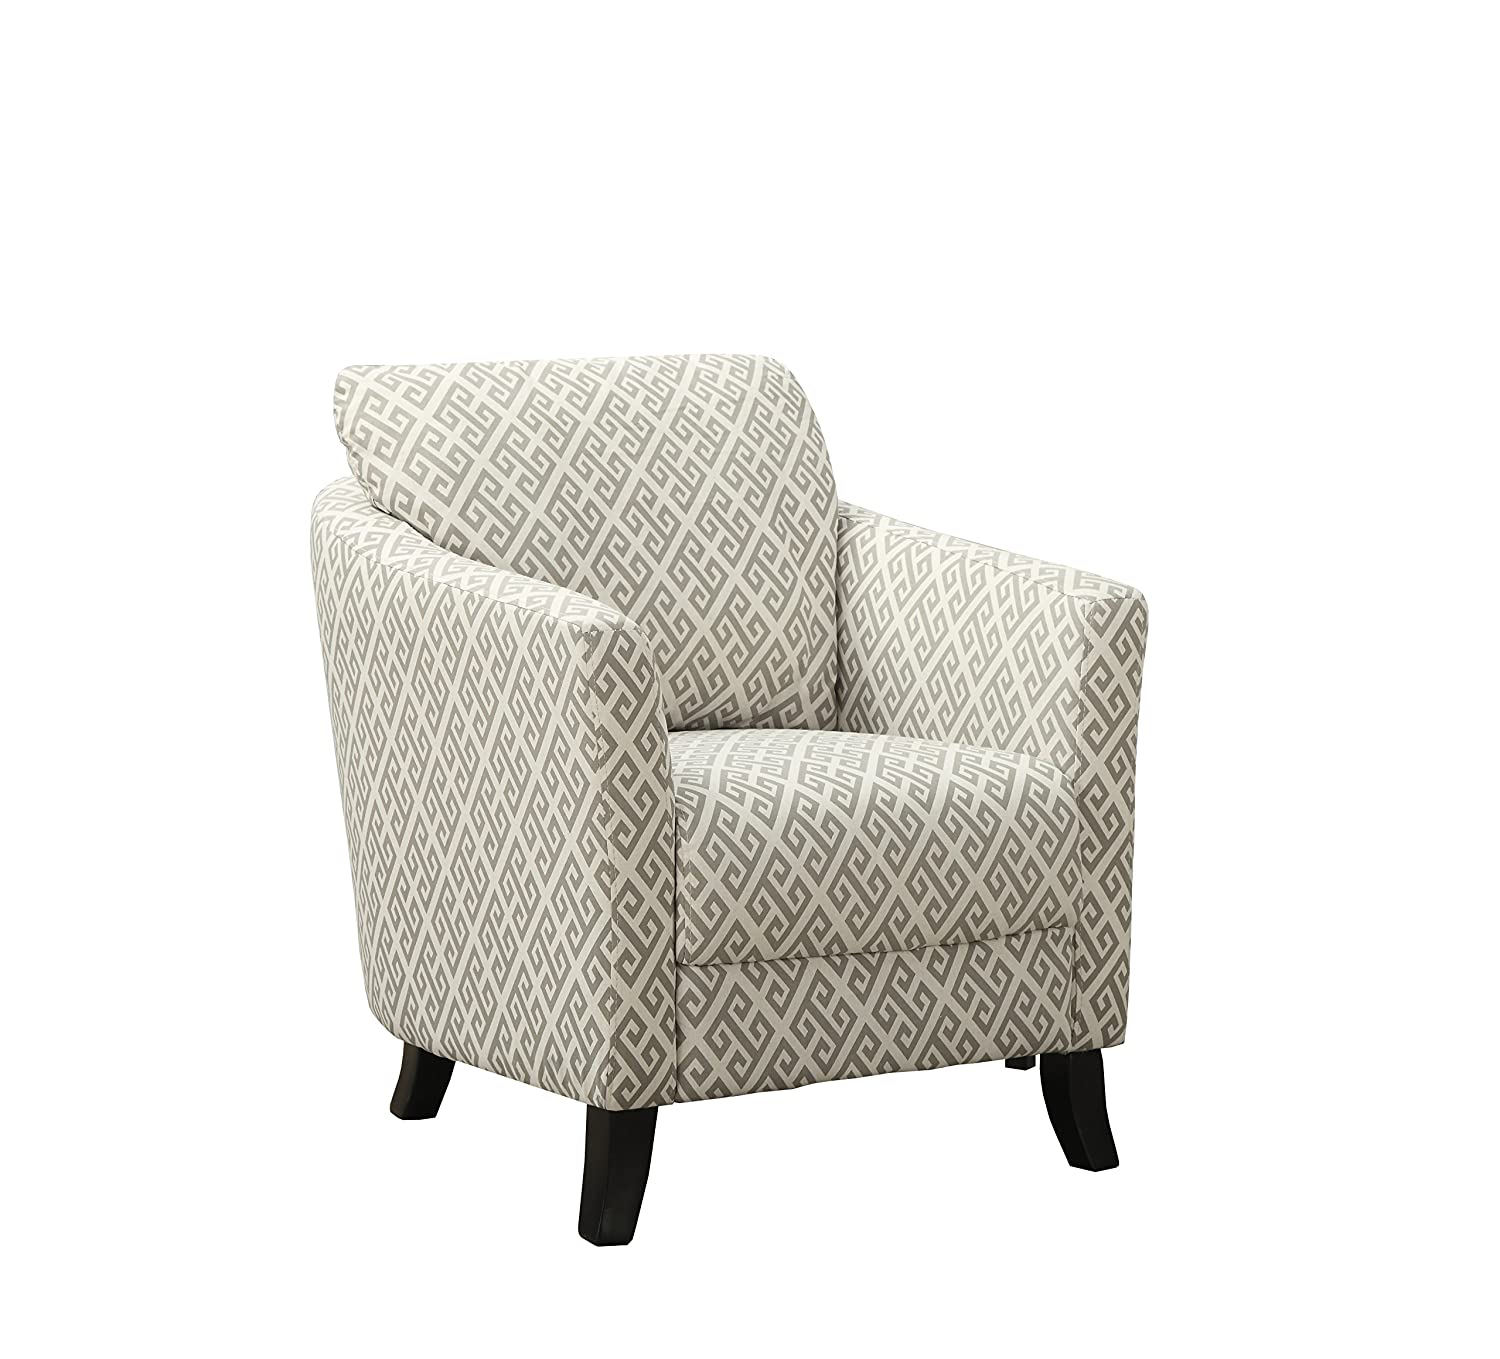 Monarch Specialties I 8009 Sandstone Grey Maze Fabric Accent Chair, 35